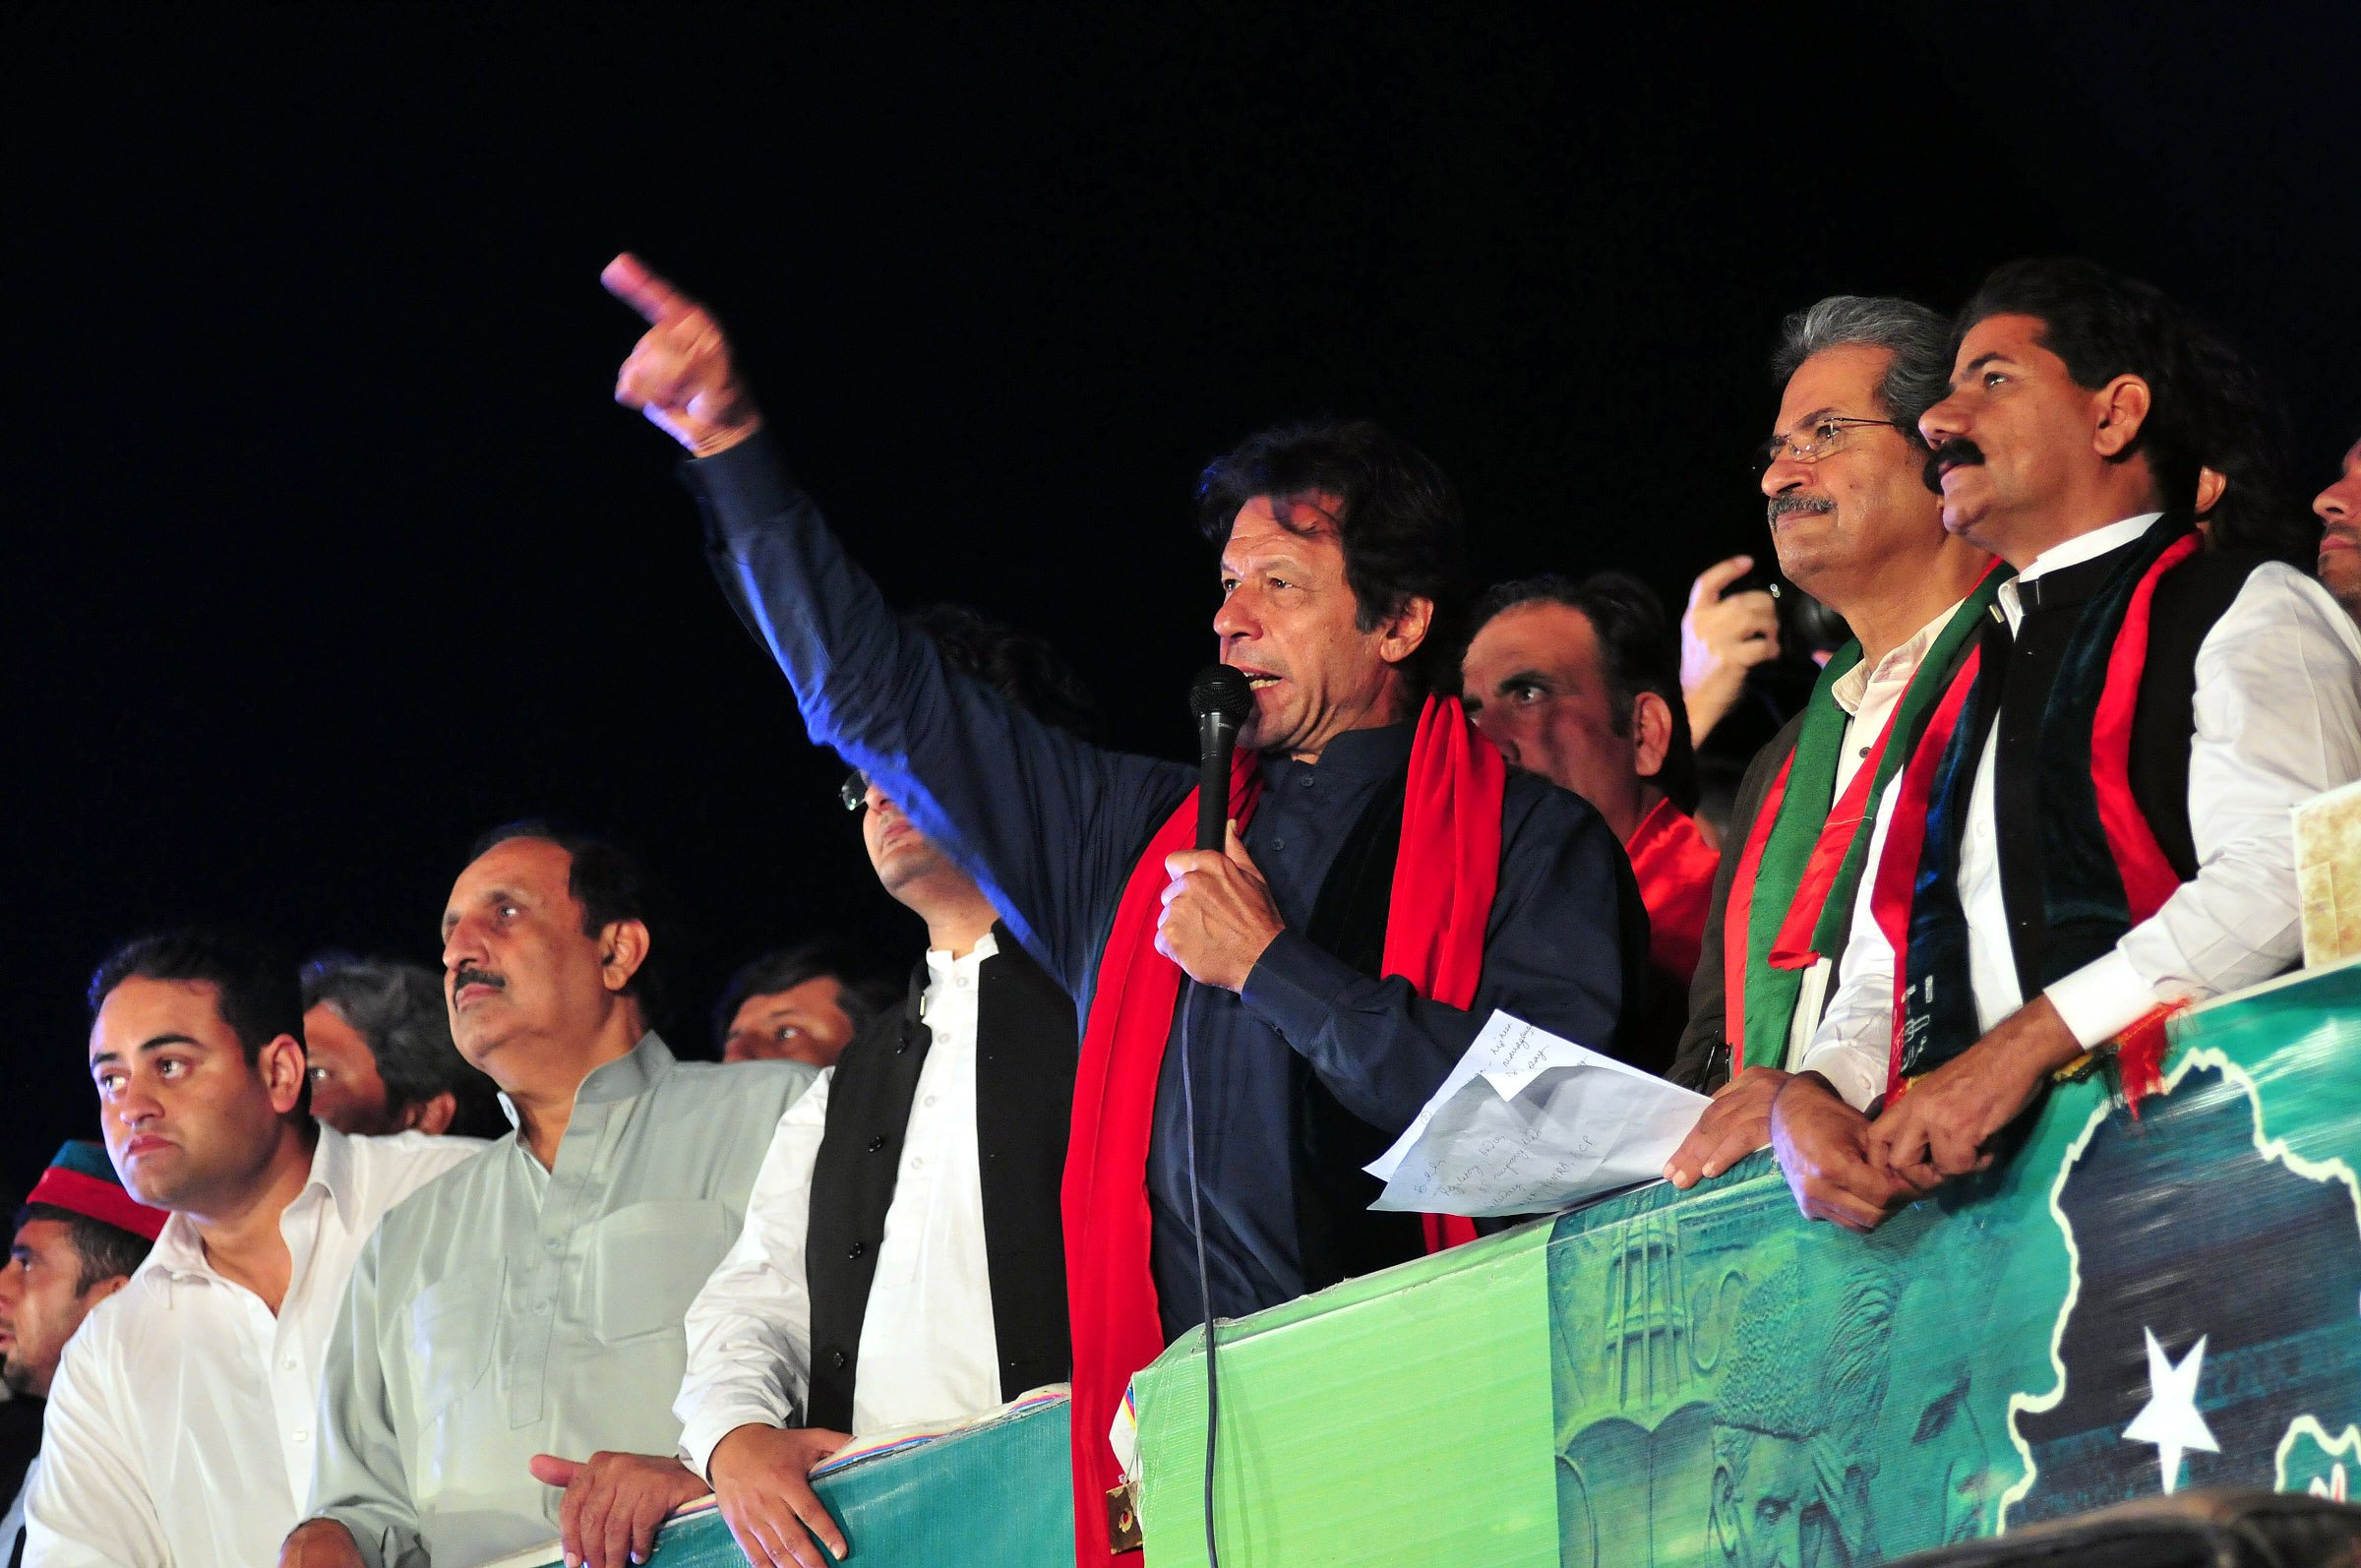 PTI Chairman Imran Khan addressing 'Azadi' March on Monday, October 20, 2014. PHOTO: EXPRESS/FILE